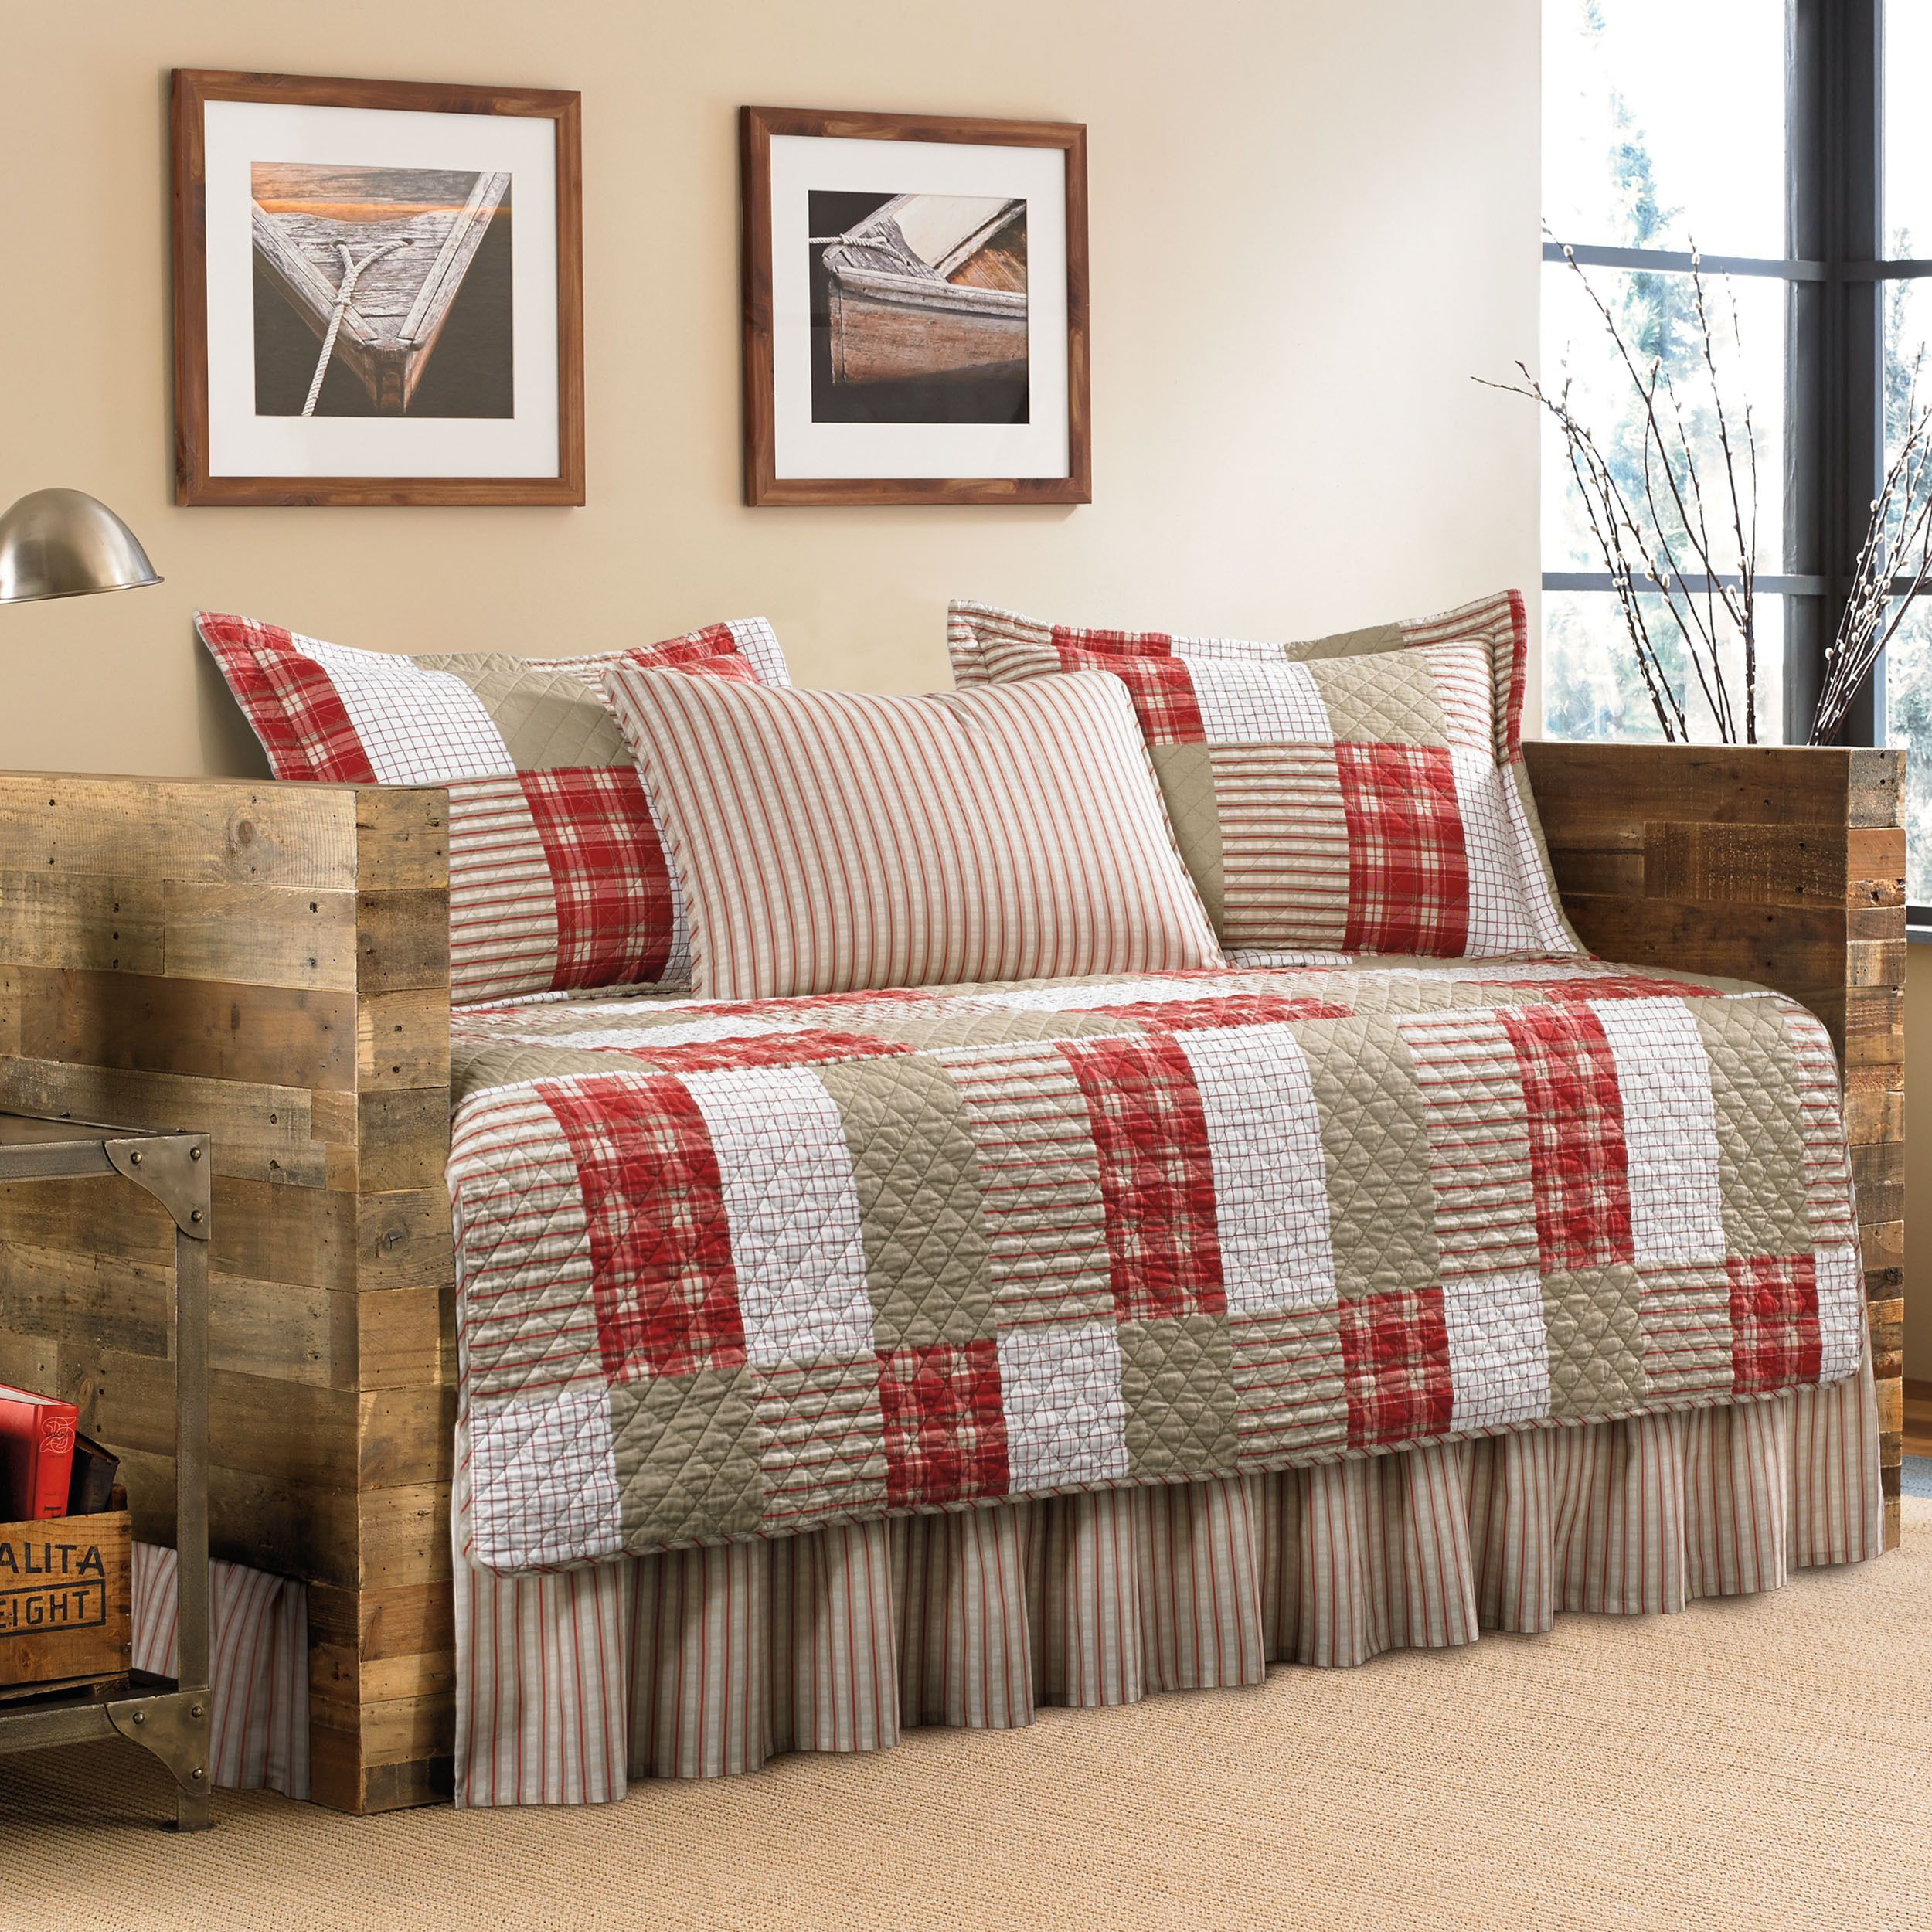 Overstockcom Online Shopping  Bedding, Furniture, Electronics, Jewelry, Clothing &